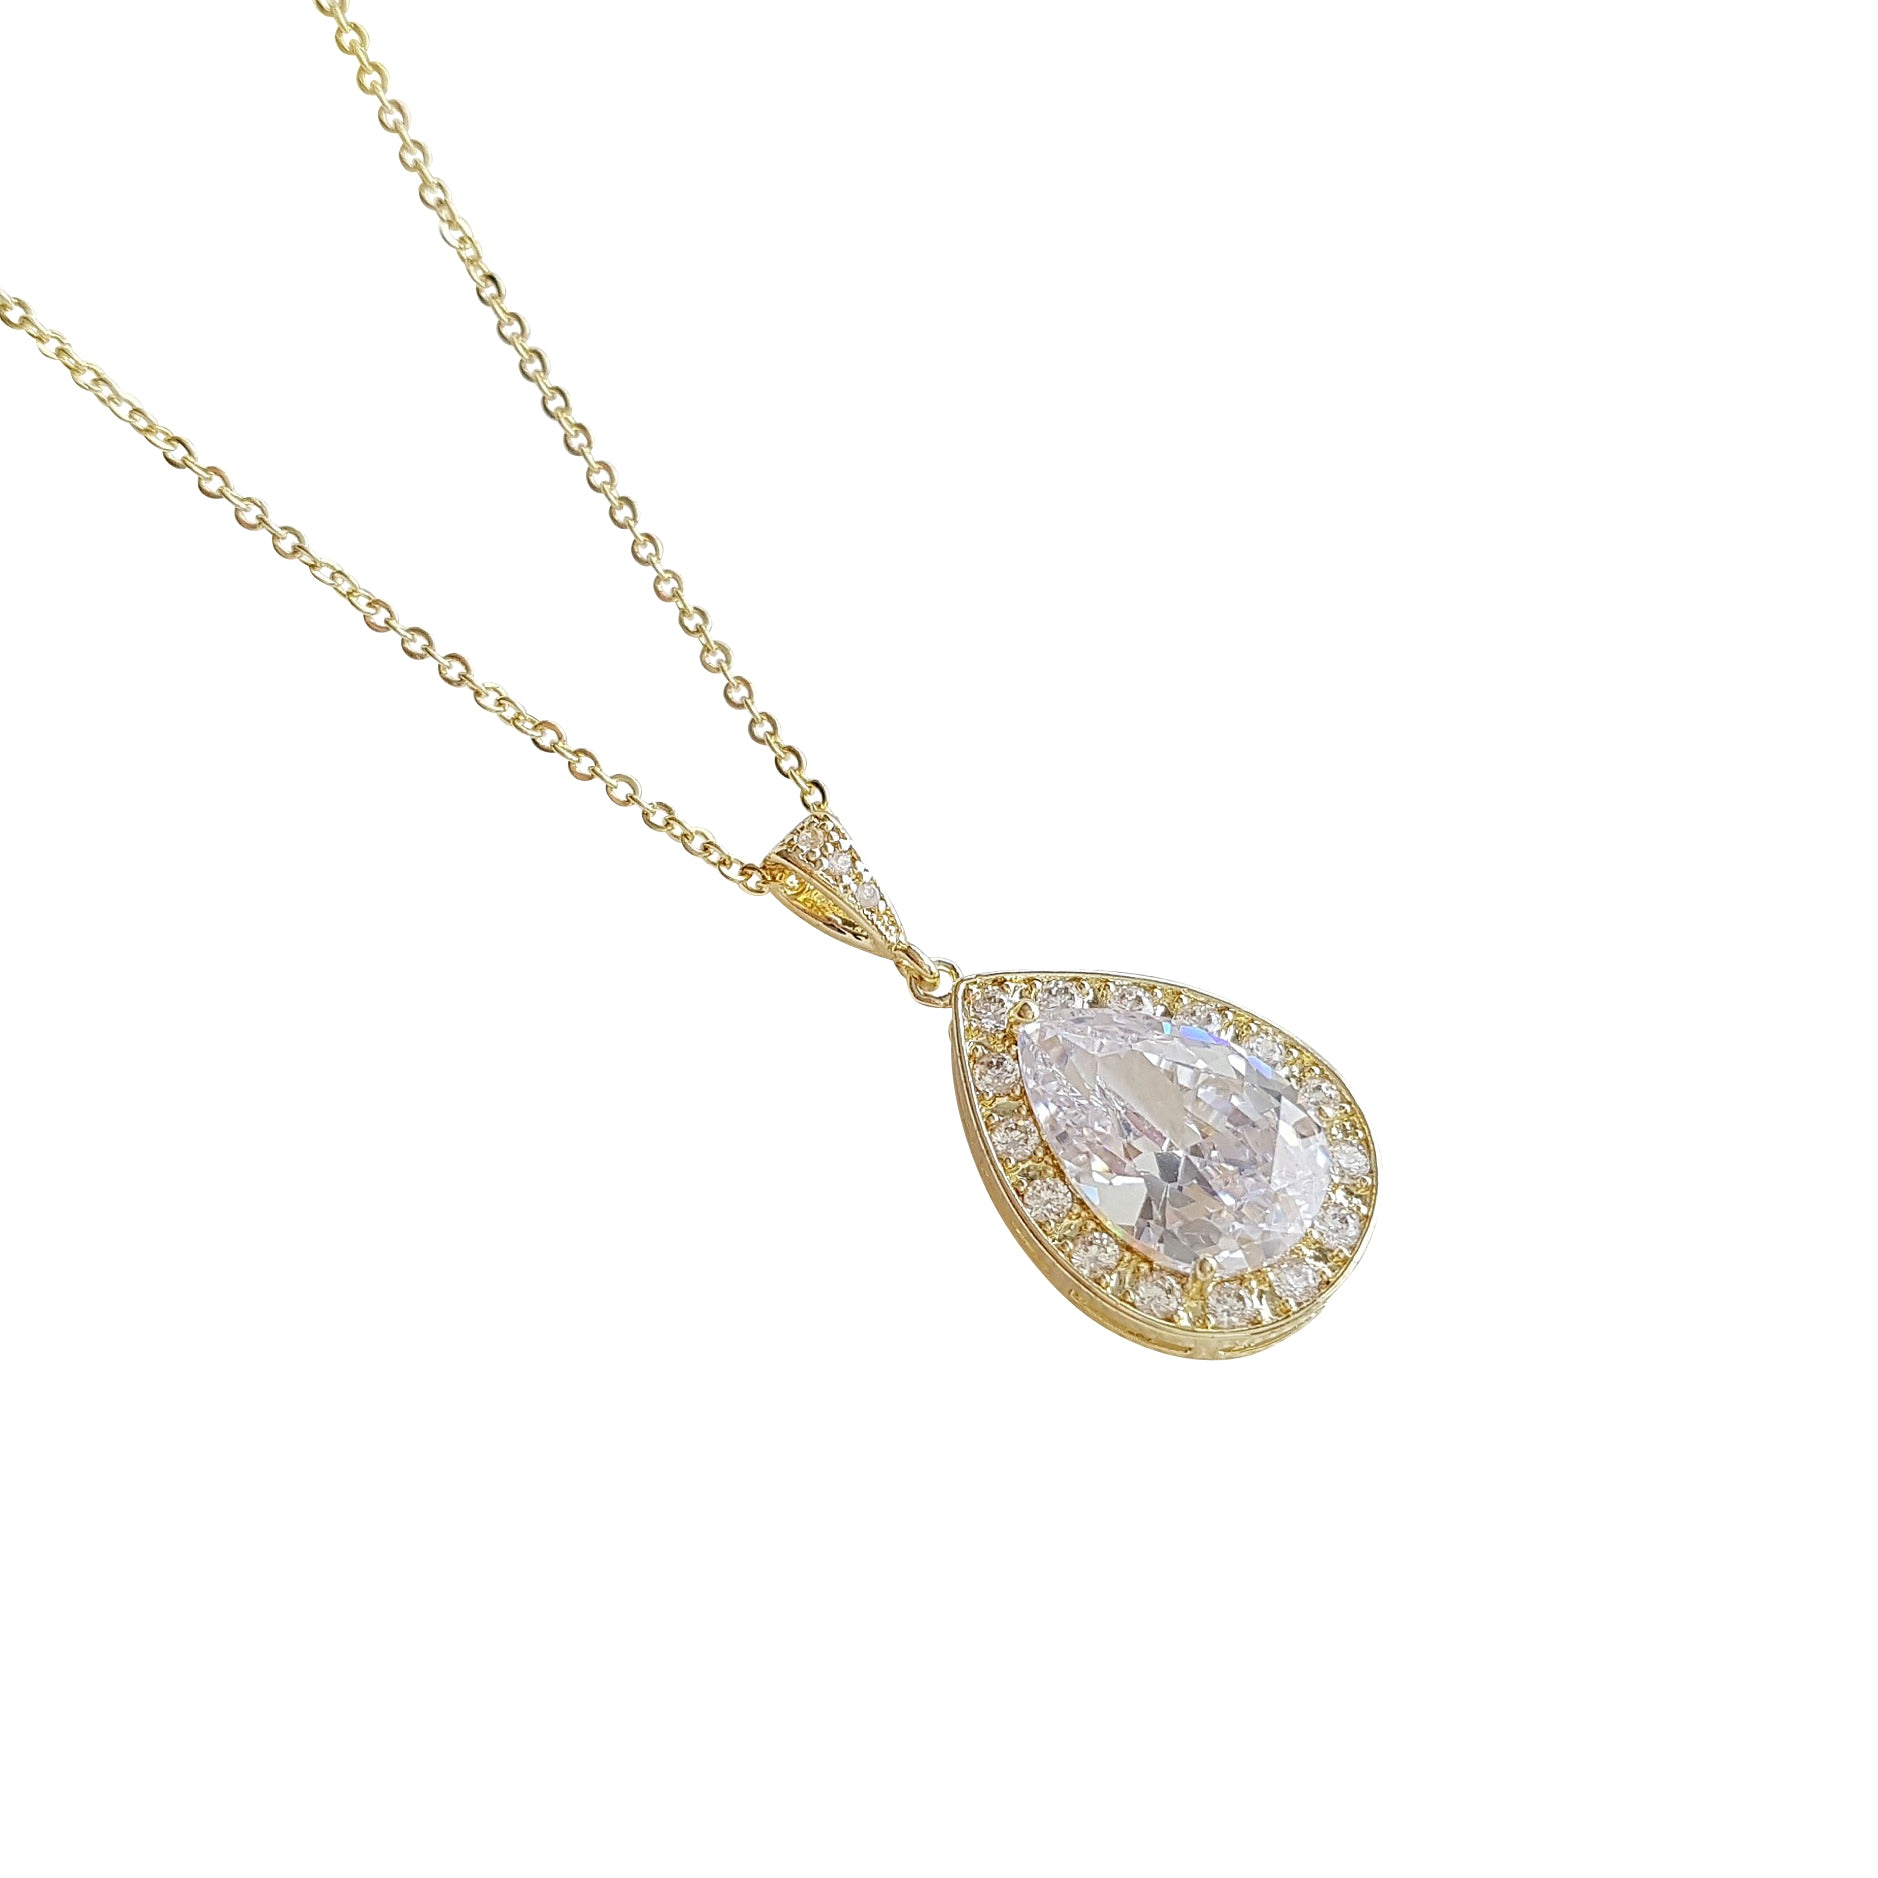 Rose Gold Teardrop Pendant Necklace for Brides & Bridesmaids-Evelyn